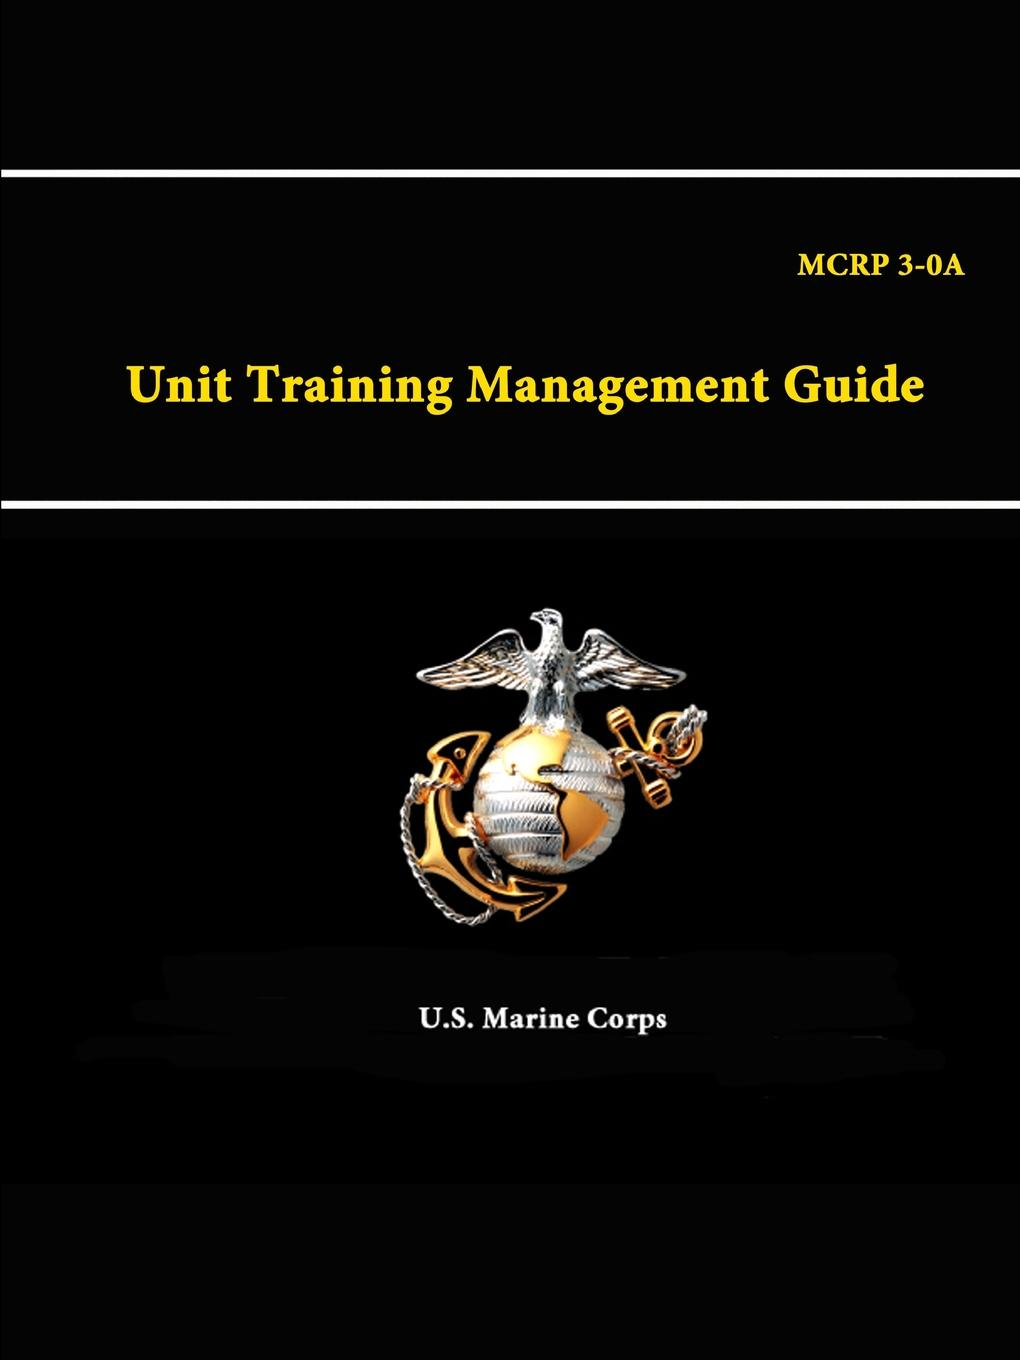 U.S. Marine Corps A Unit Training Management Guide - MCRP 3-0 matthew stephenson the hands on guide to surgical training